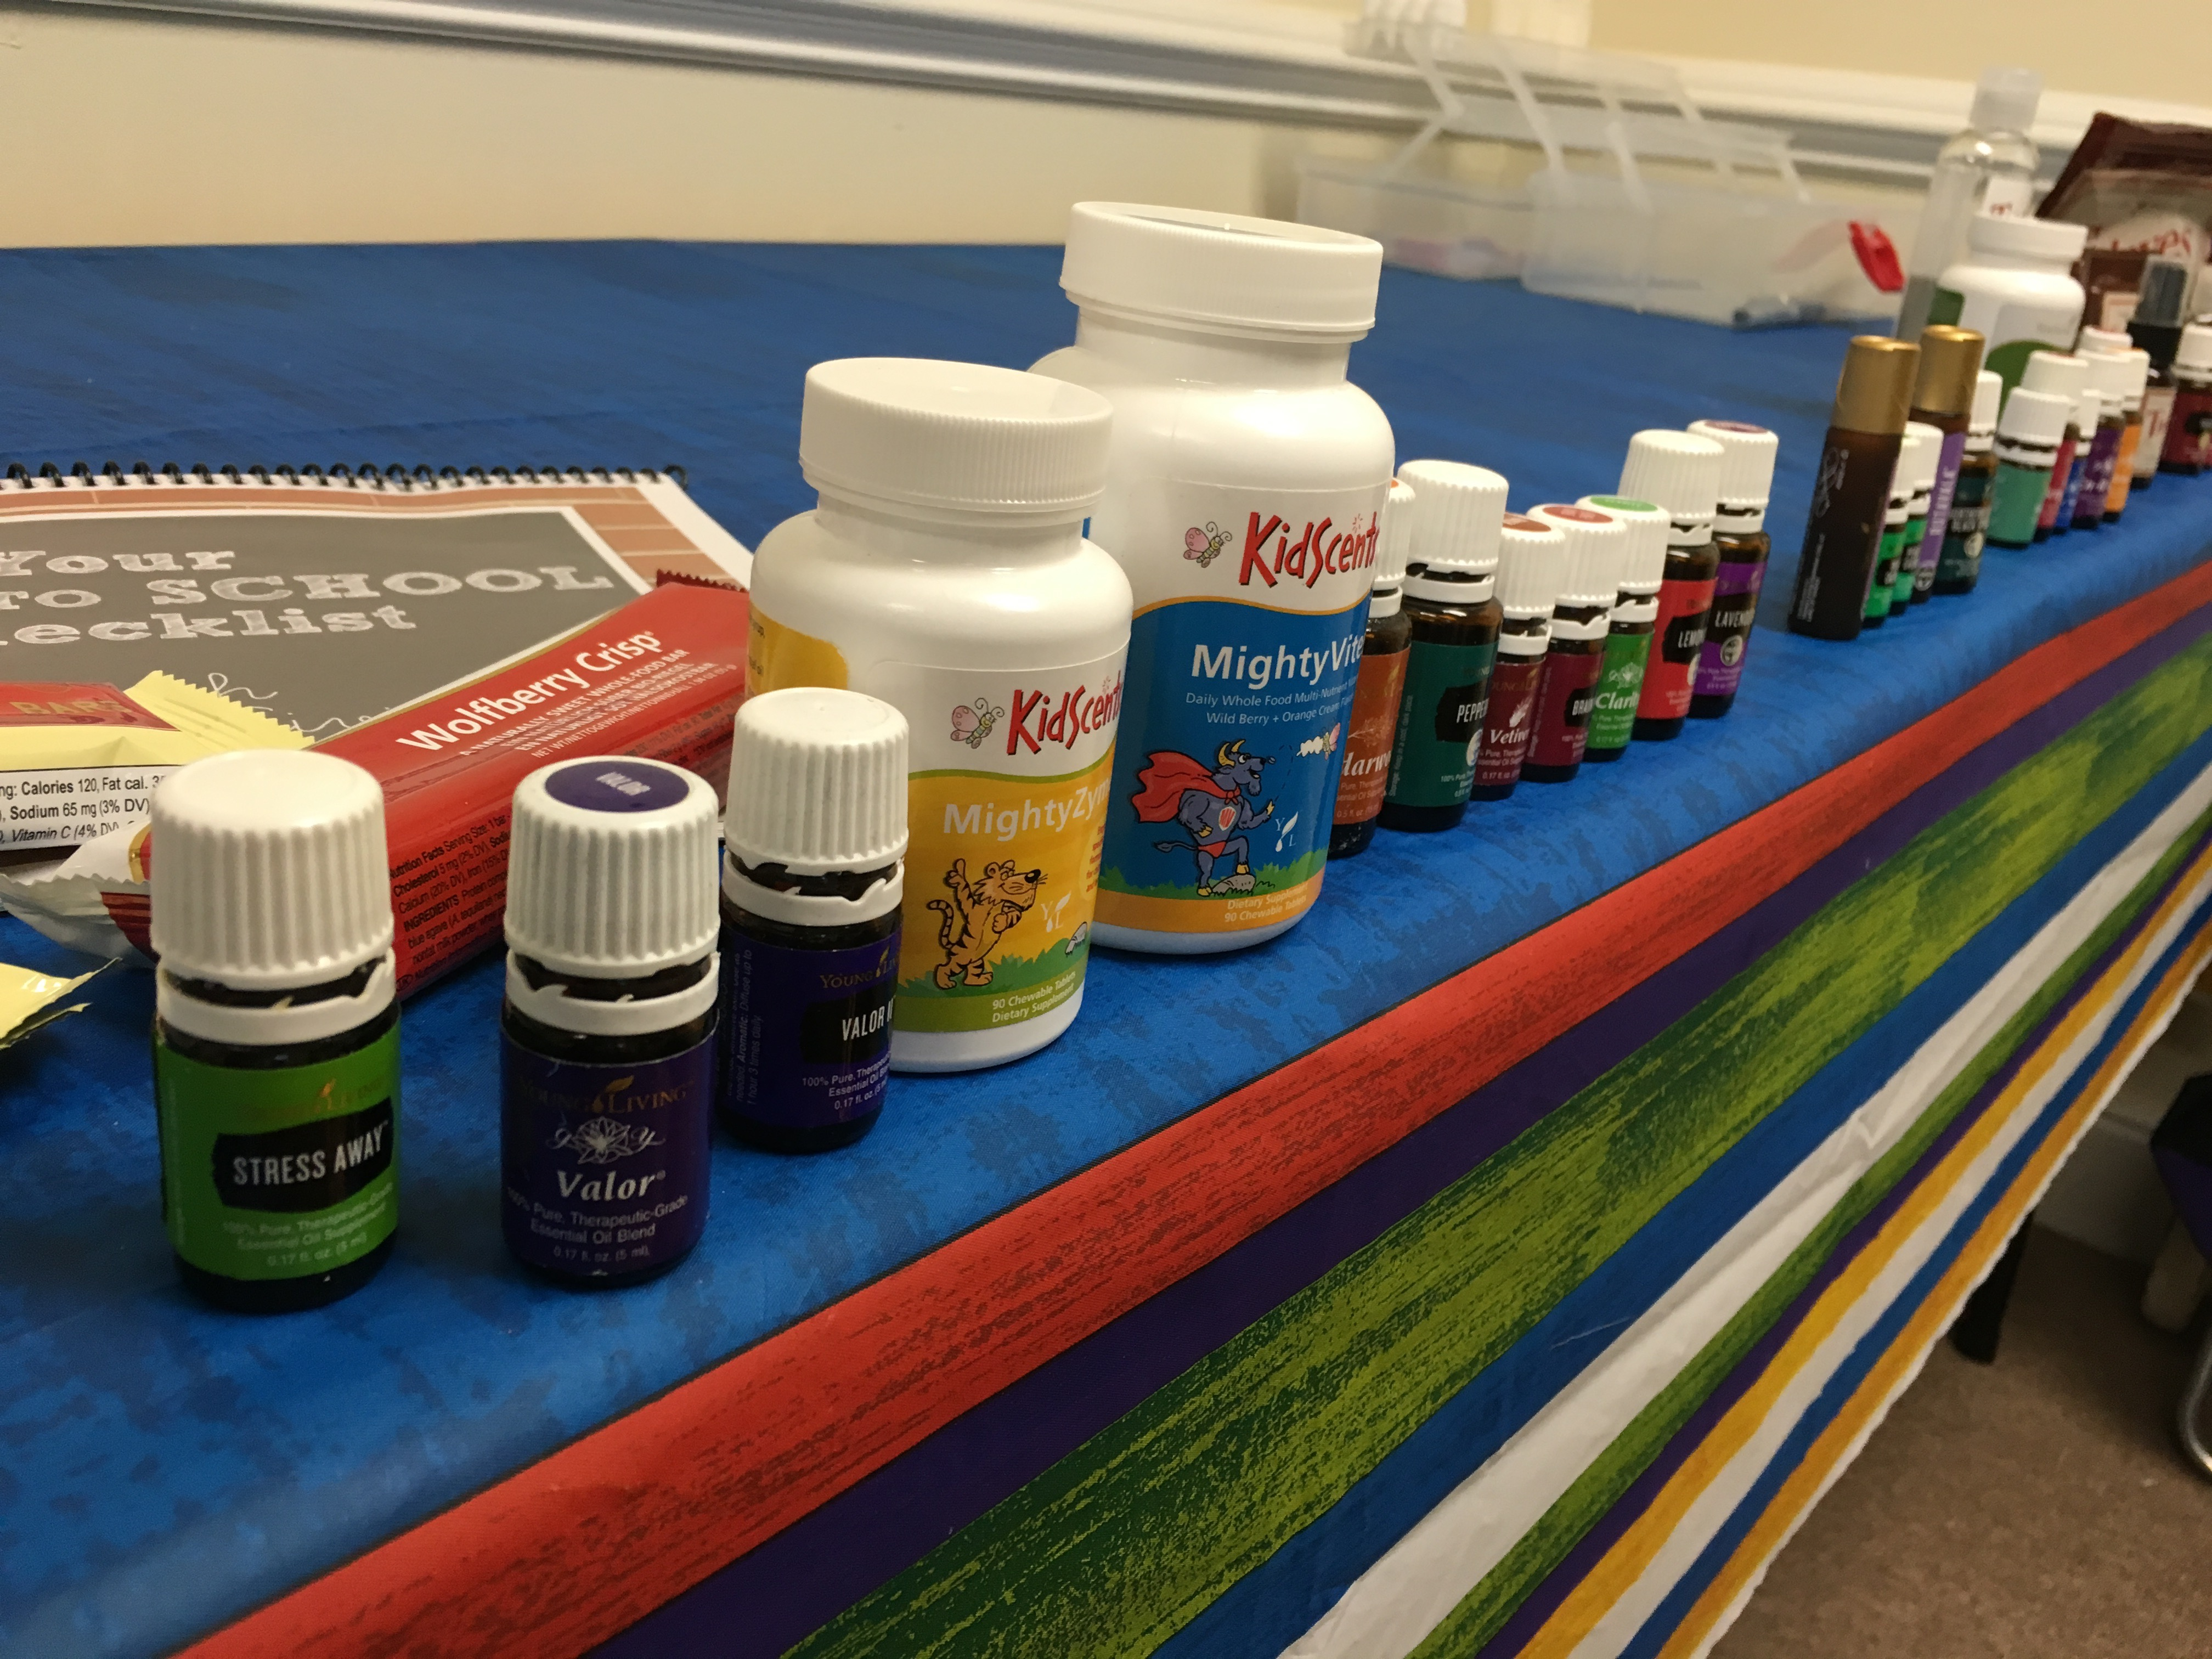 Layout of All Oils - Back to School In Person Class